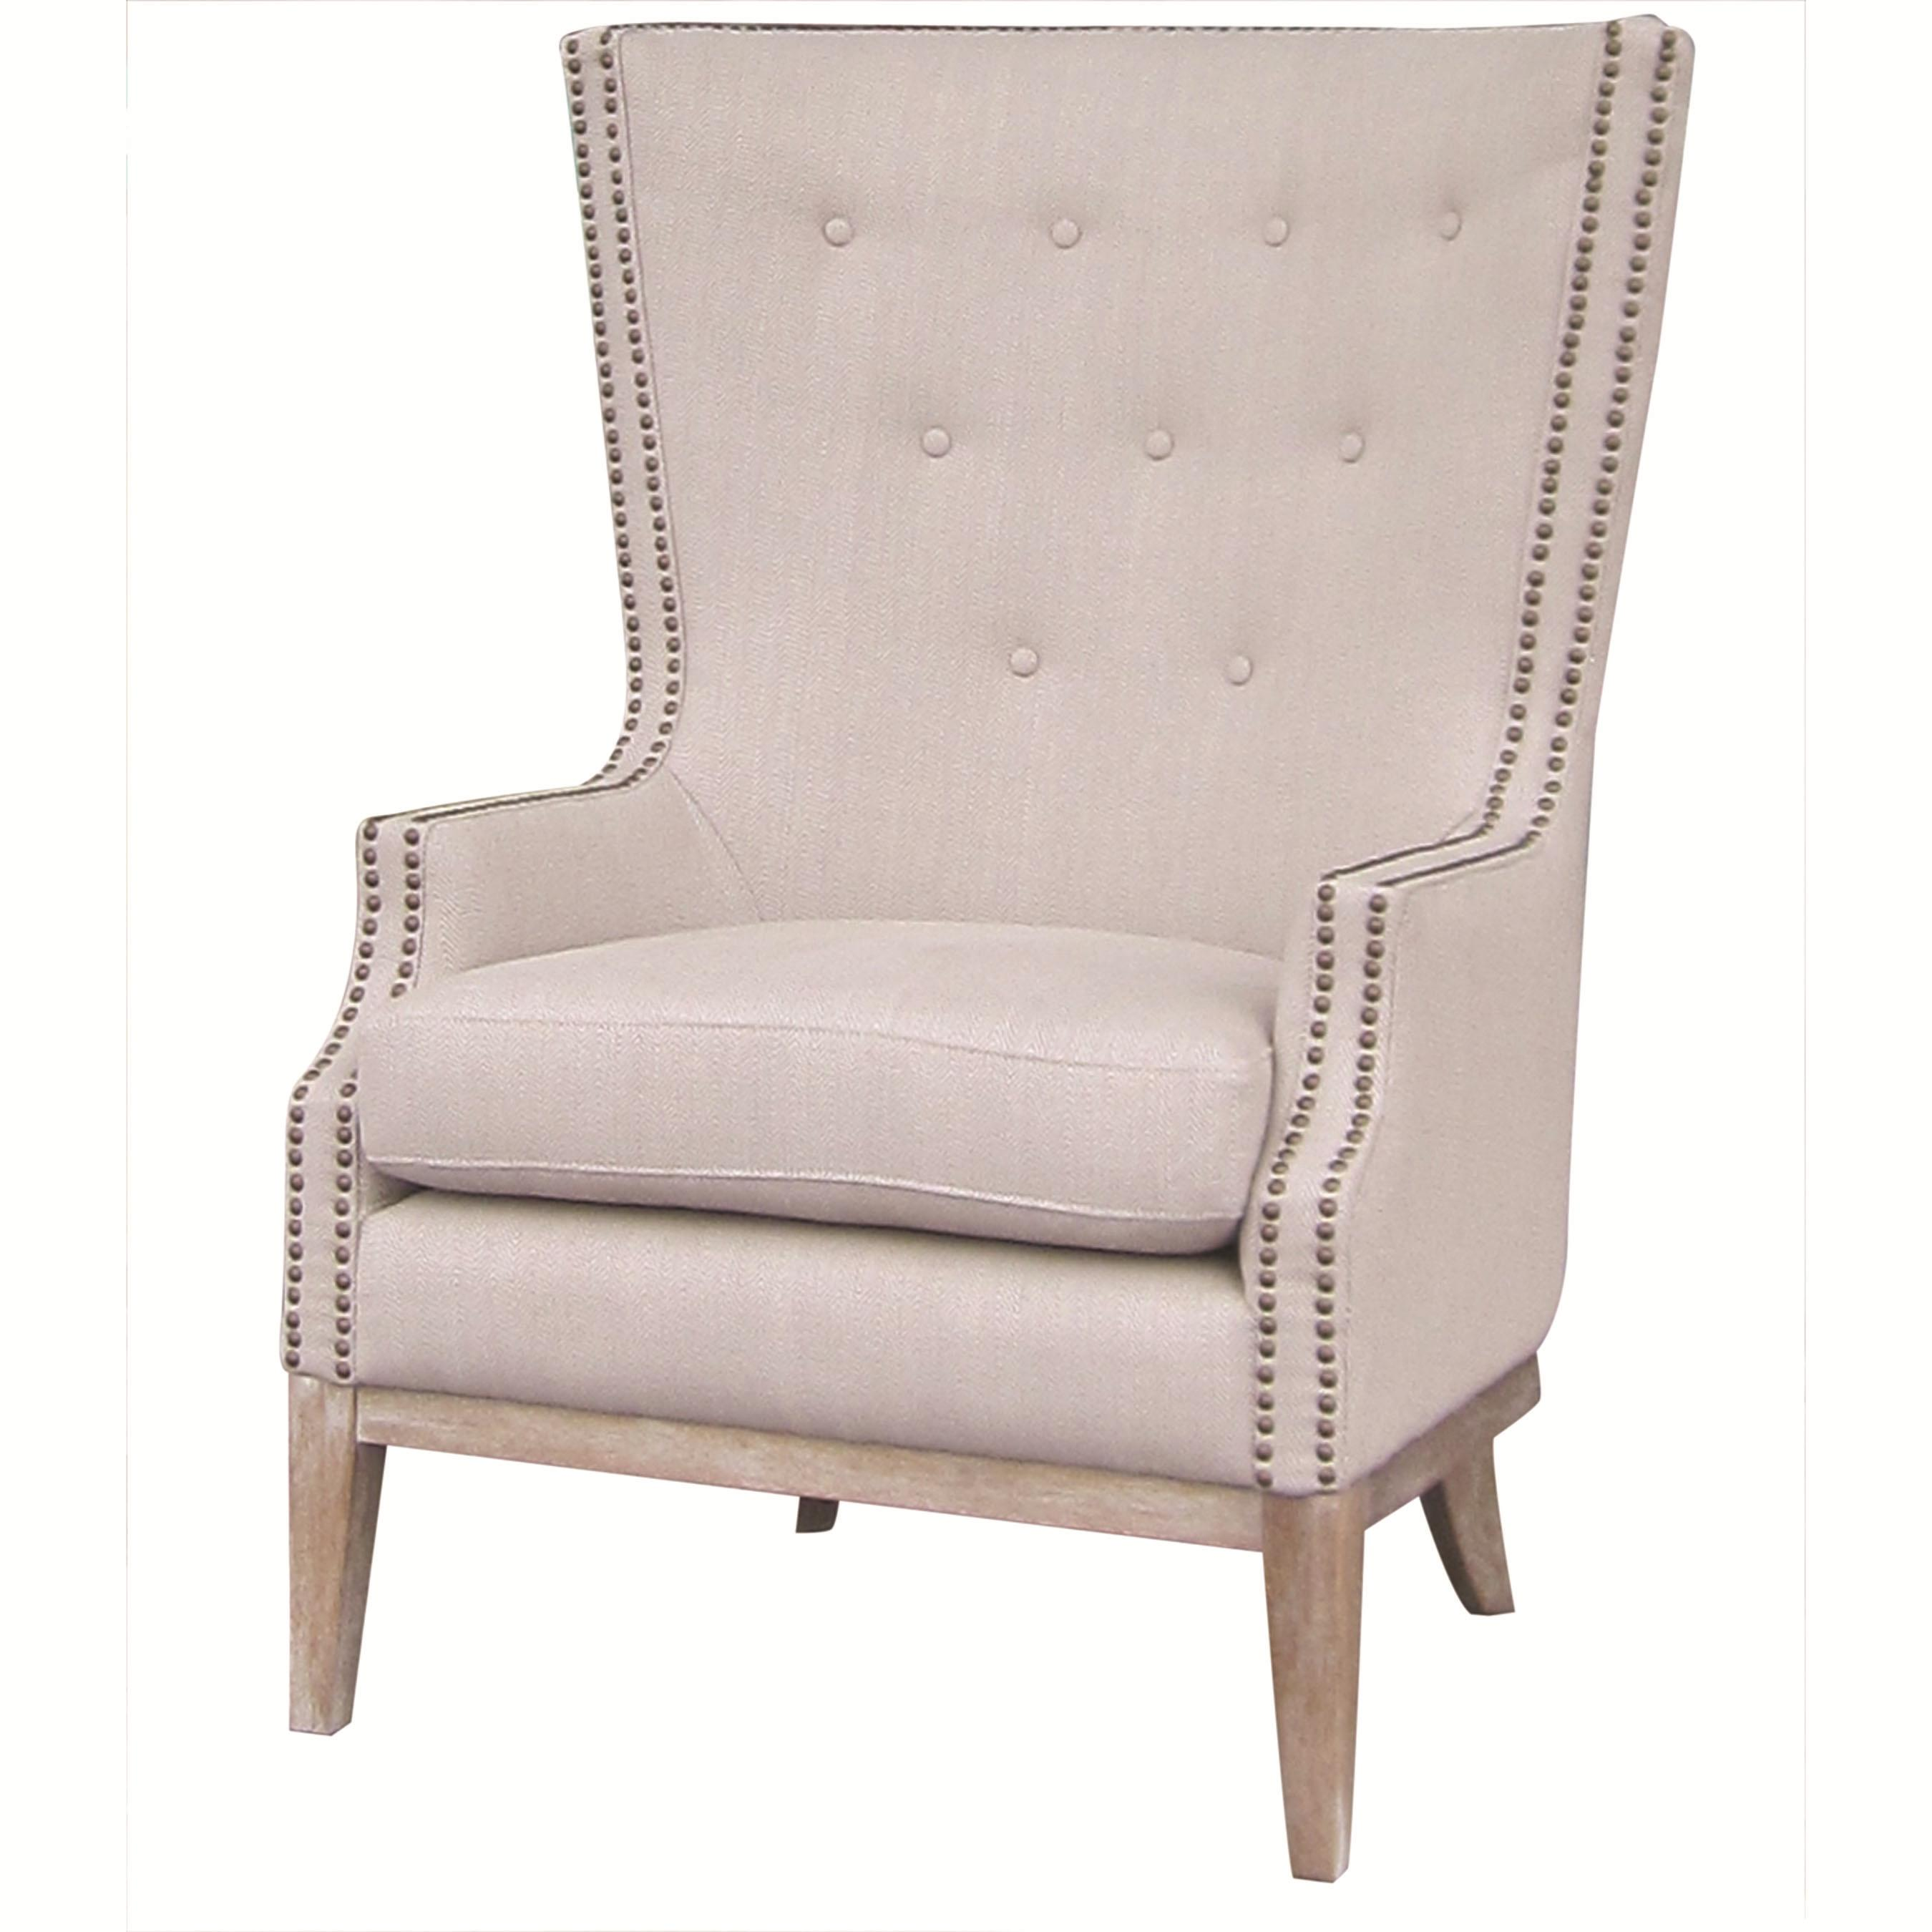 four chairs furniture kmart dining nz hands kensington lillian occasional chair with button